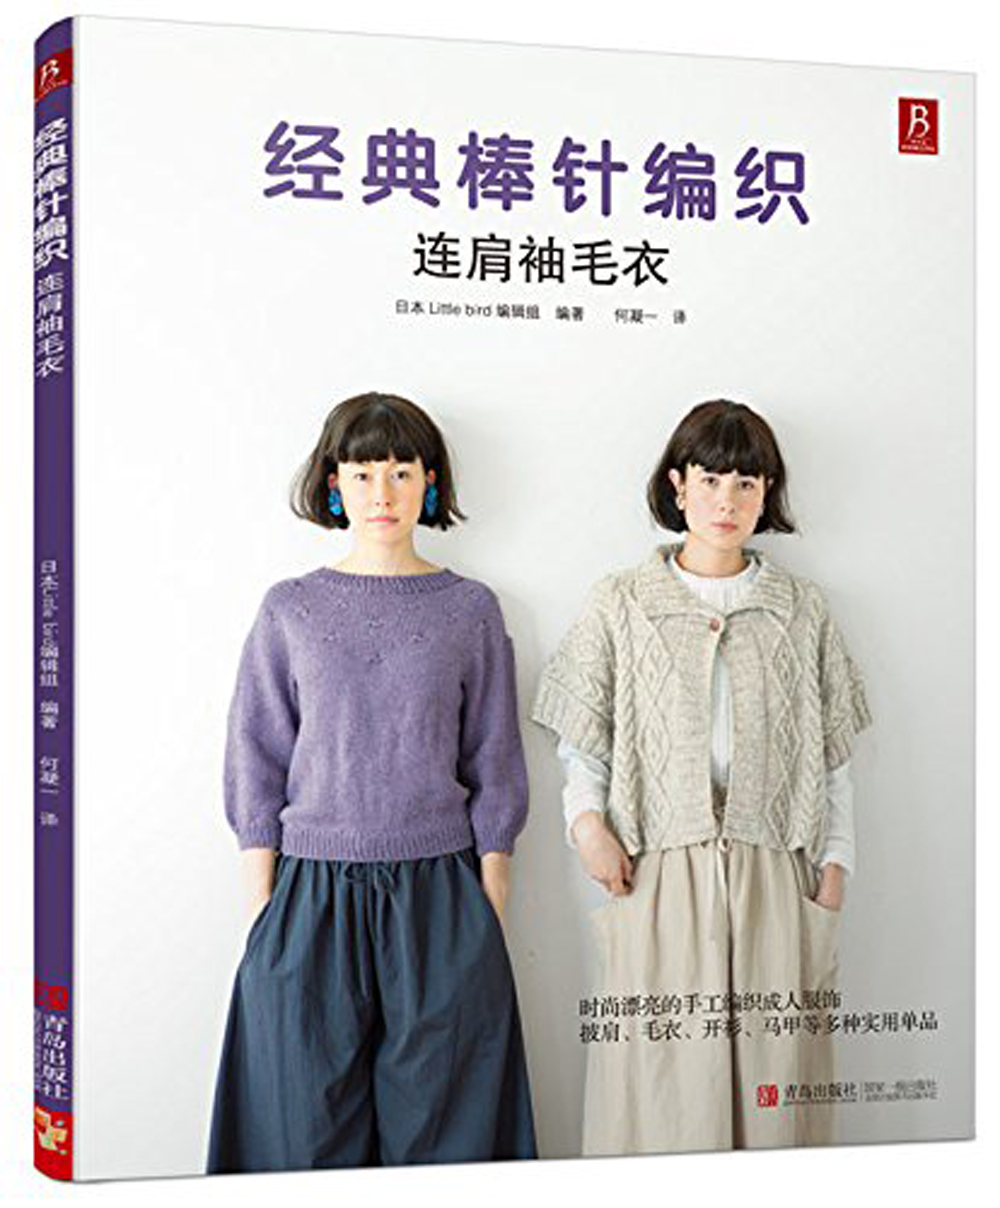 Japanese Classical Rod Knitting Book: Raglan Sleeve Sweater In Chinese